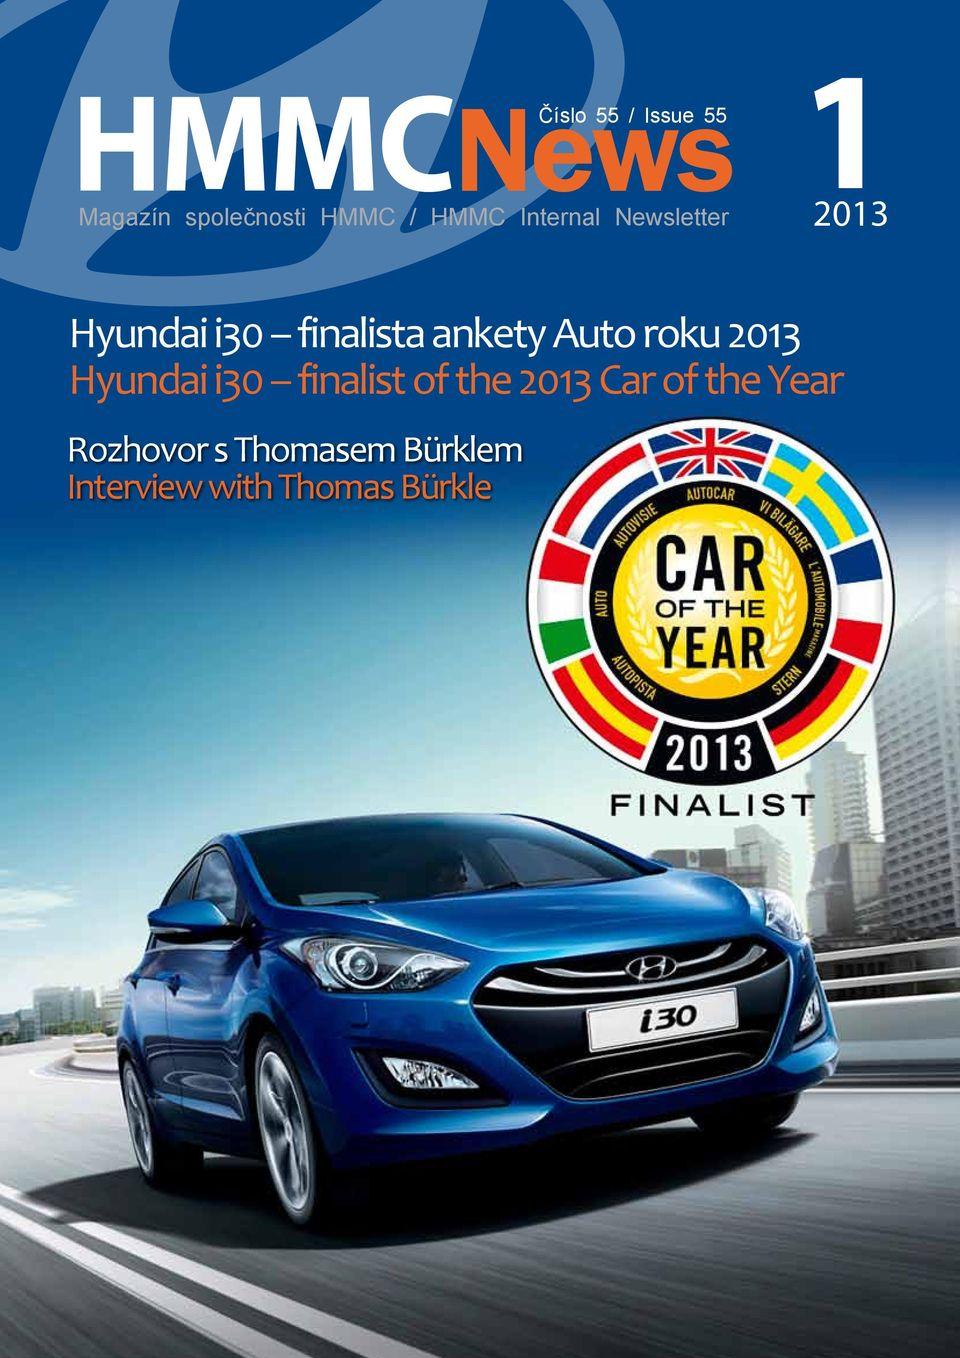 Auto roku 2013 Hyundai i30 finalist of the 2013 Car of